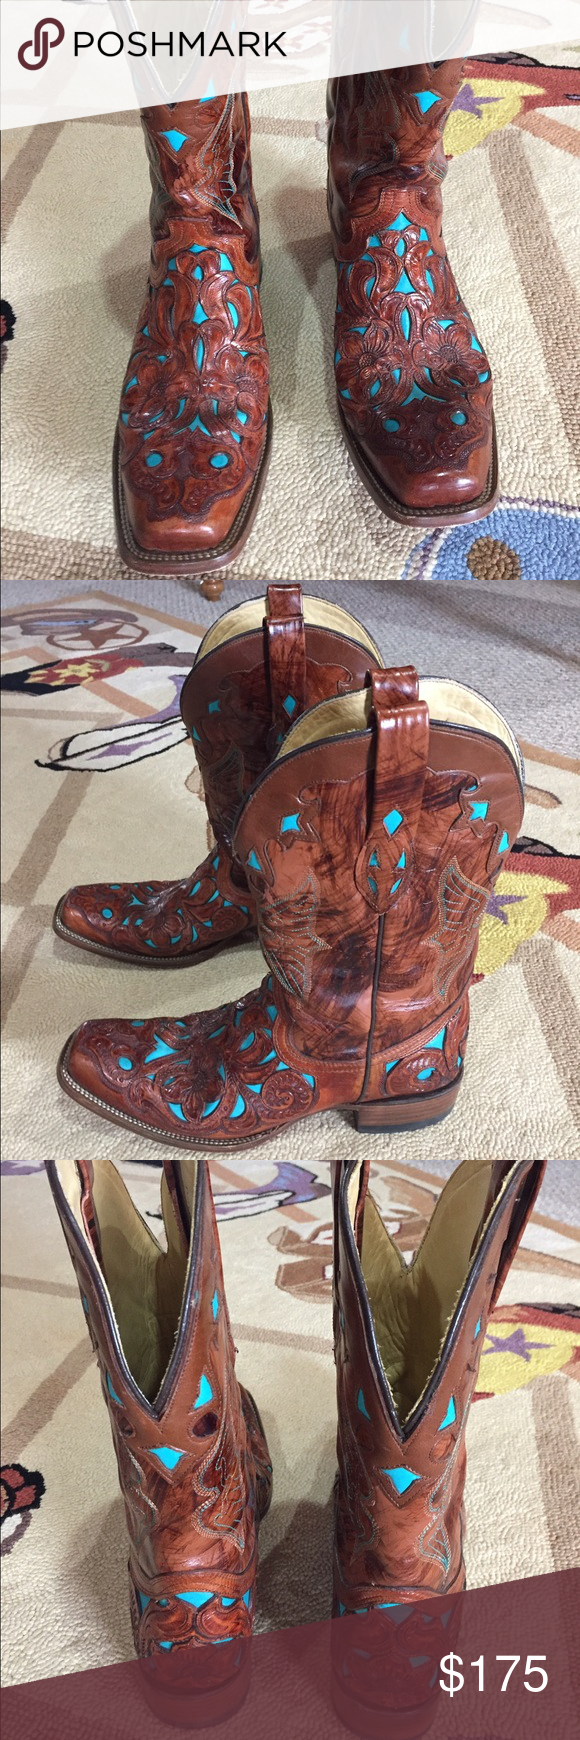 Women's Corral Boots 11 Gorgeous pair of Women's Corral Boots in brown with TURQUOISE inlay with a Floral pattern. Trendy Square Toe and perfect for a night out! Shoes Heeled Boots